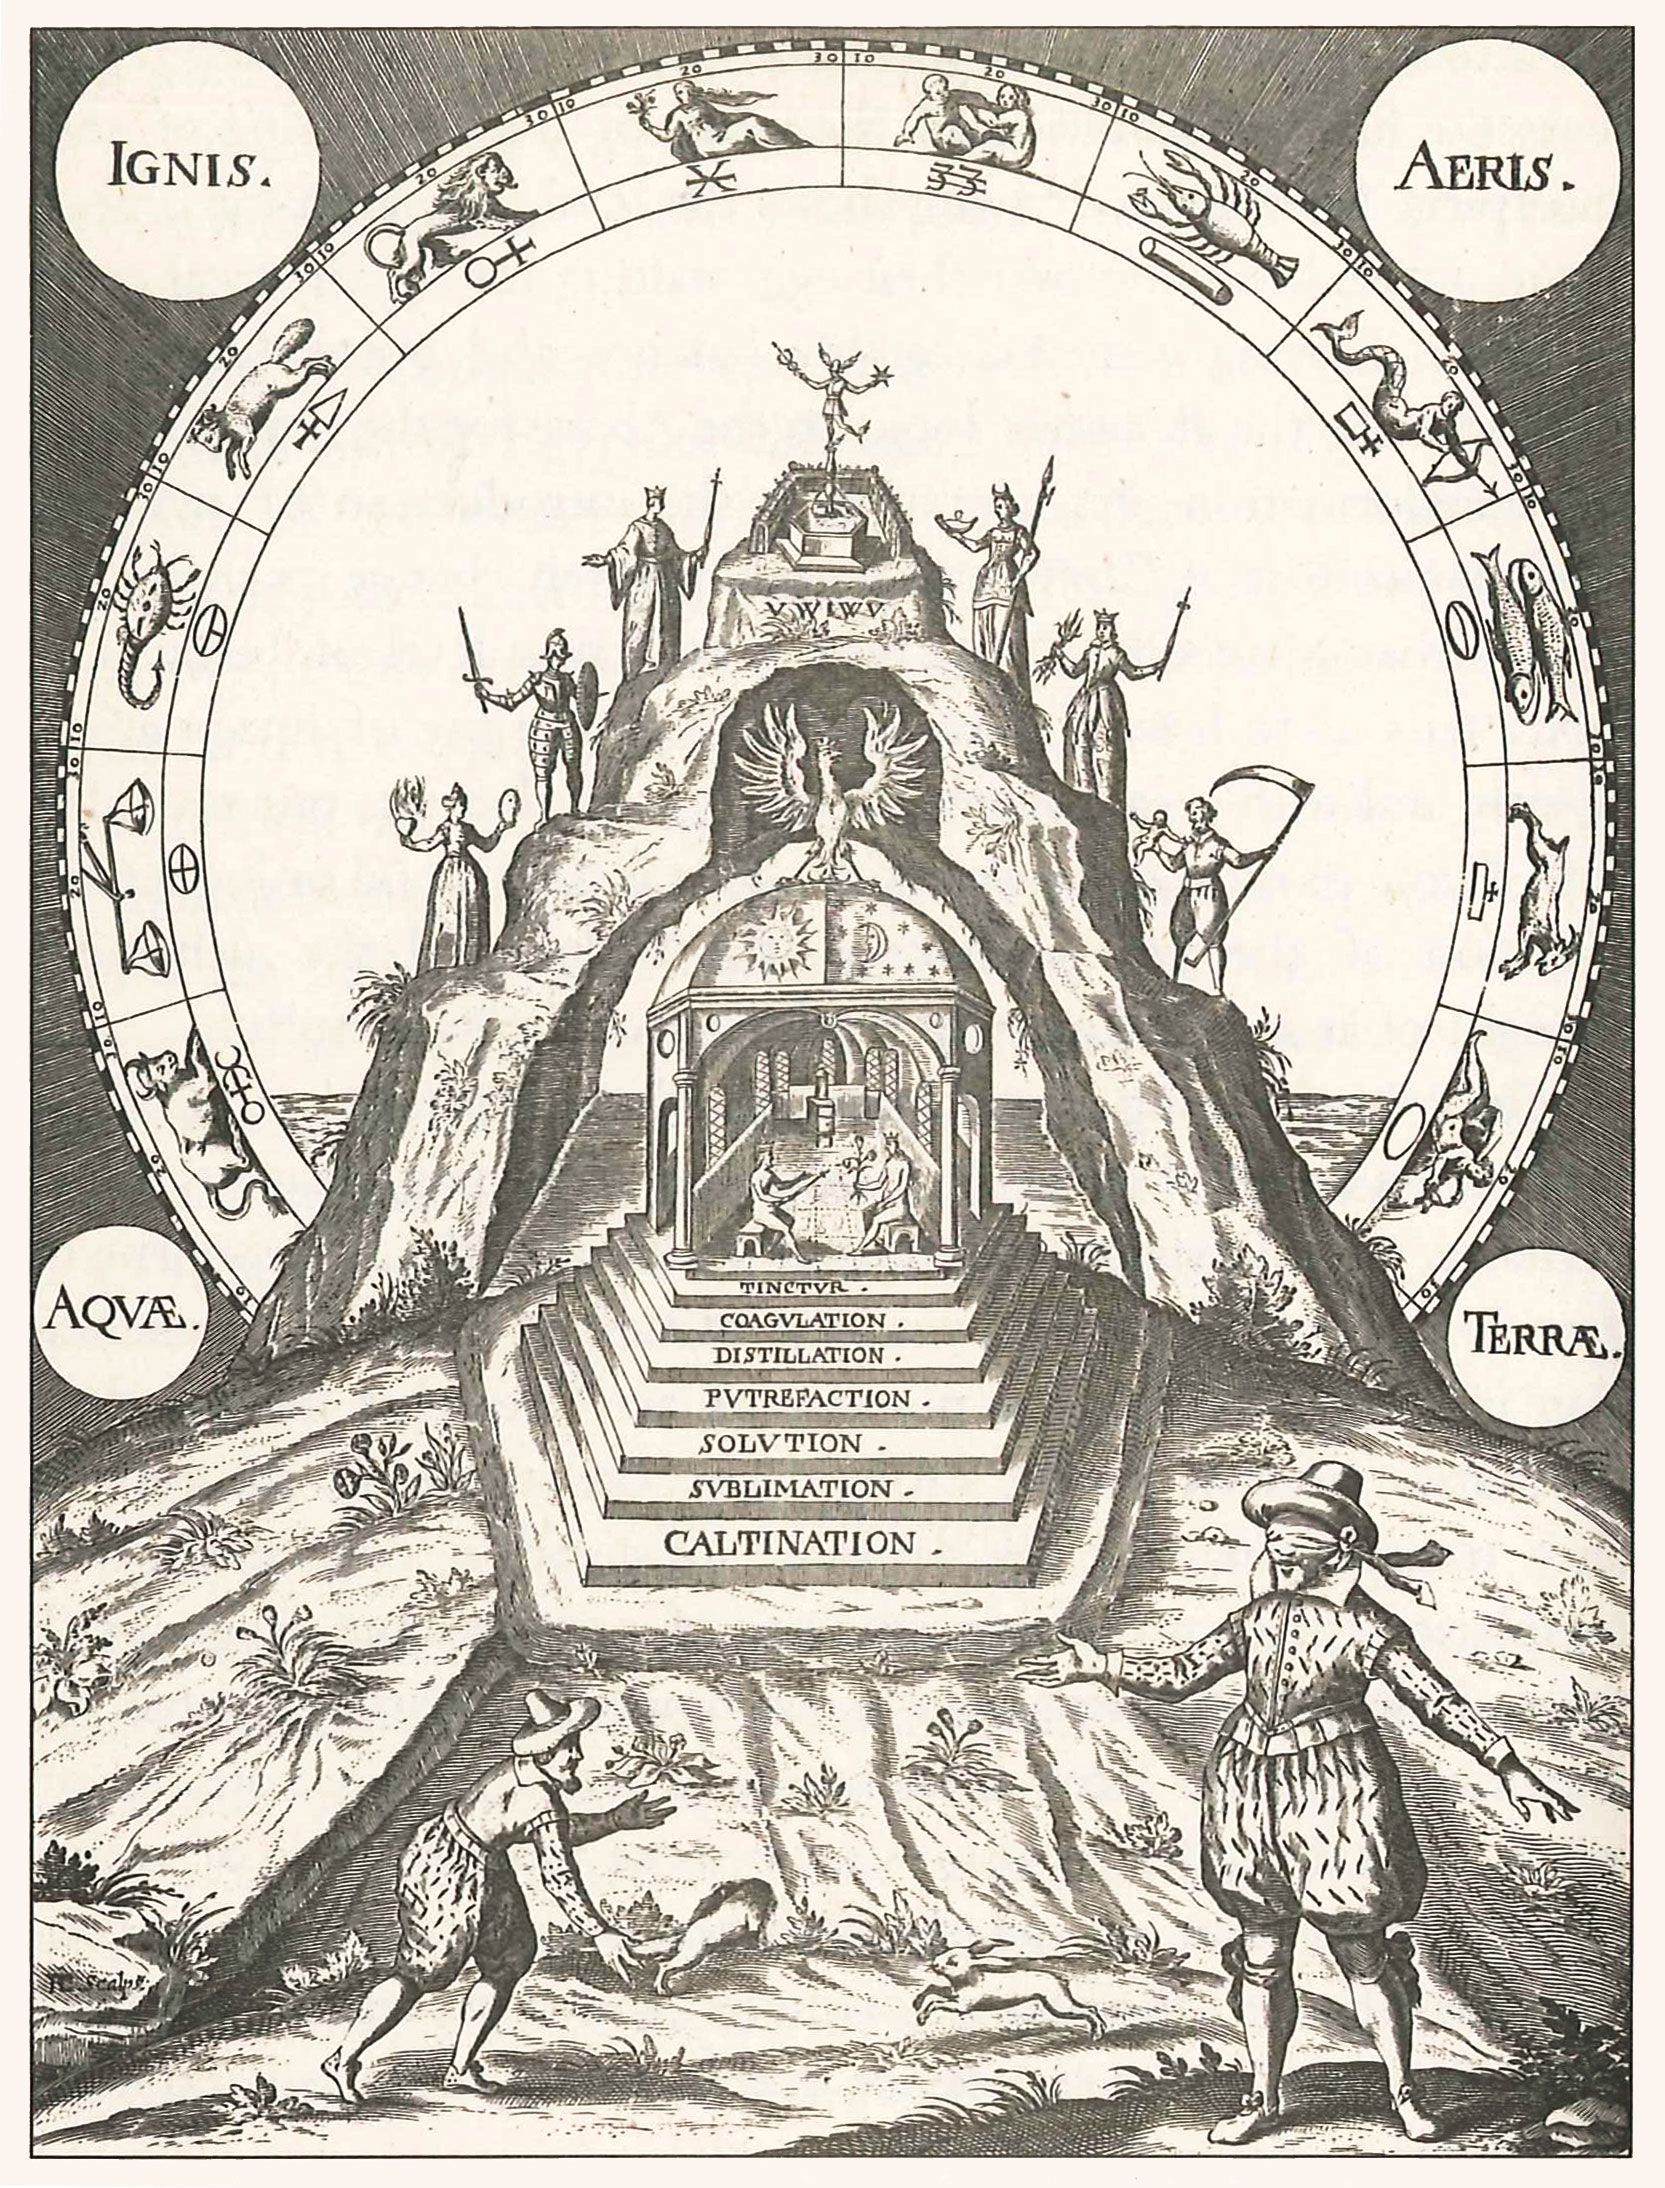 small resolution of cave of the ancients stefan michelspacher 1616 diagram 3 from cabala spiegel der kunst und natur in alchymia kabbalah mirror of art and nature in